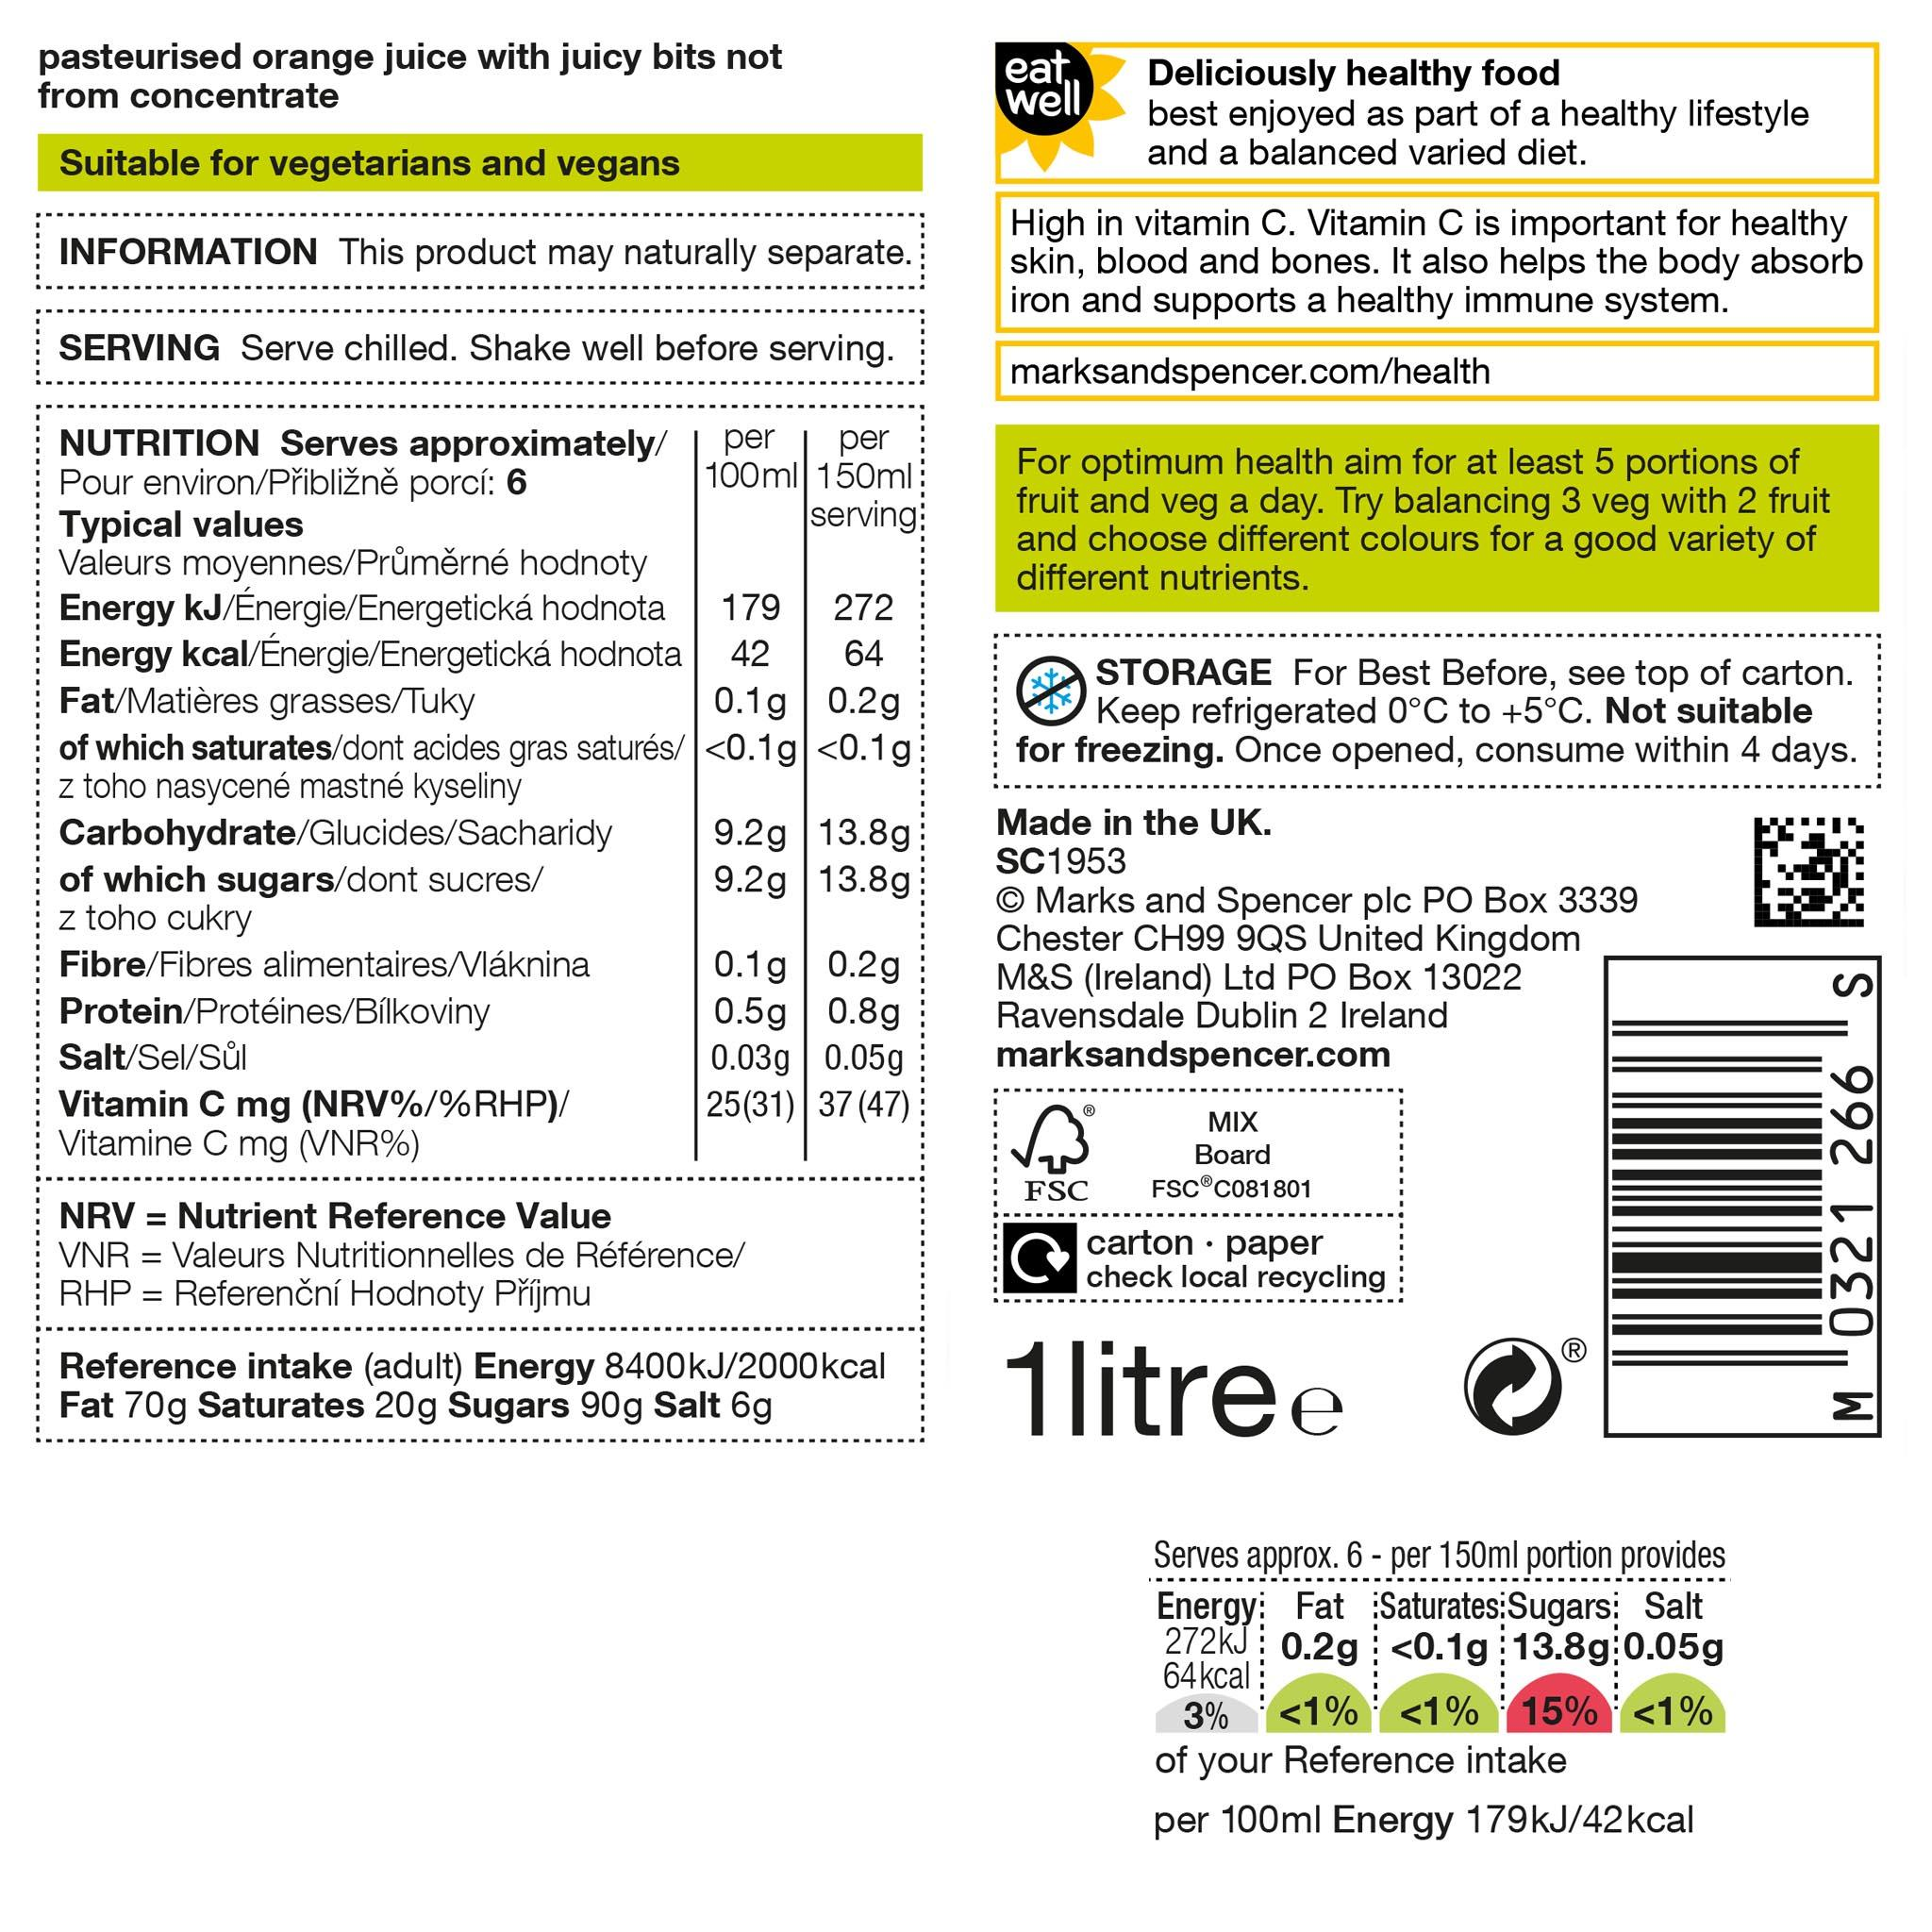 Pure Squeezed Orange Juice with Juicy Bits (Never From Concentrate) 1 Litre Label